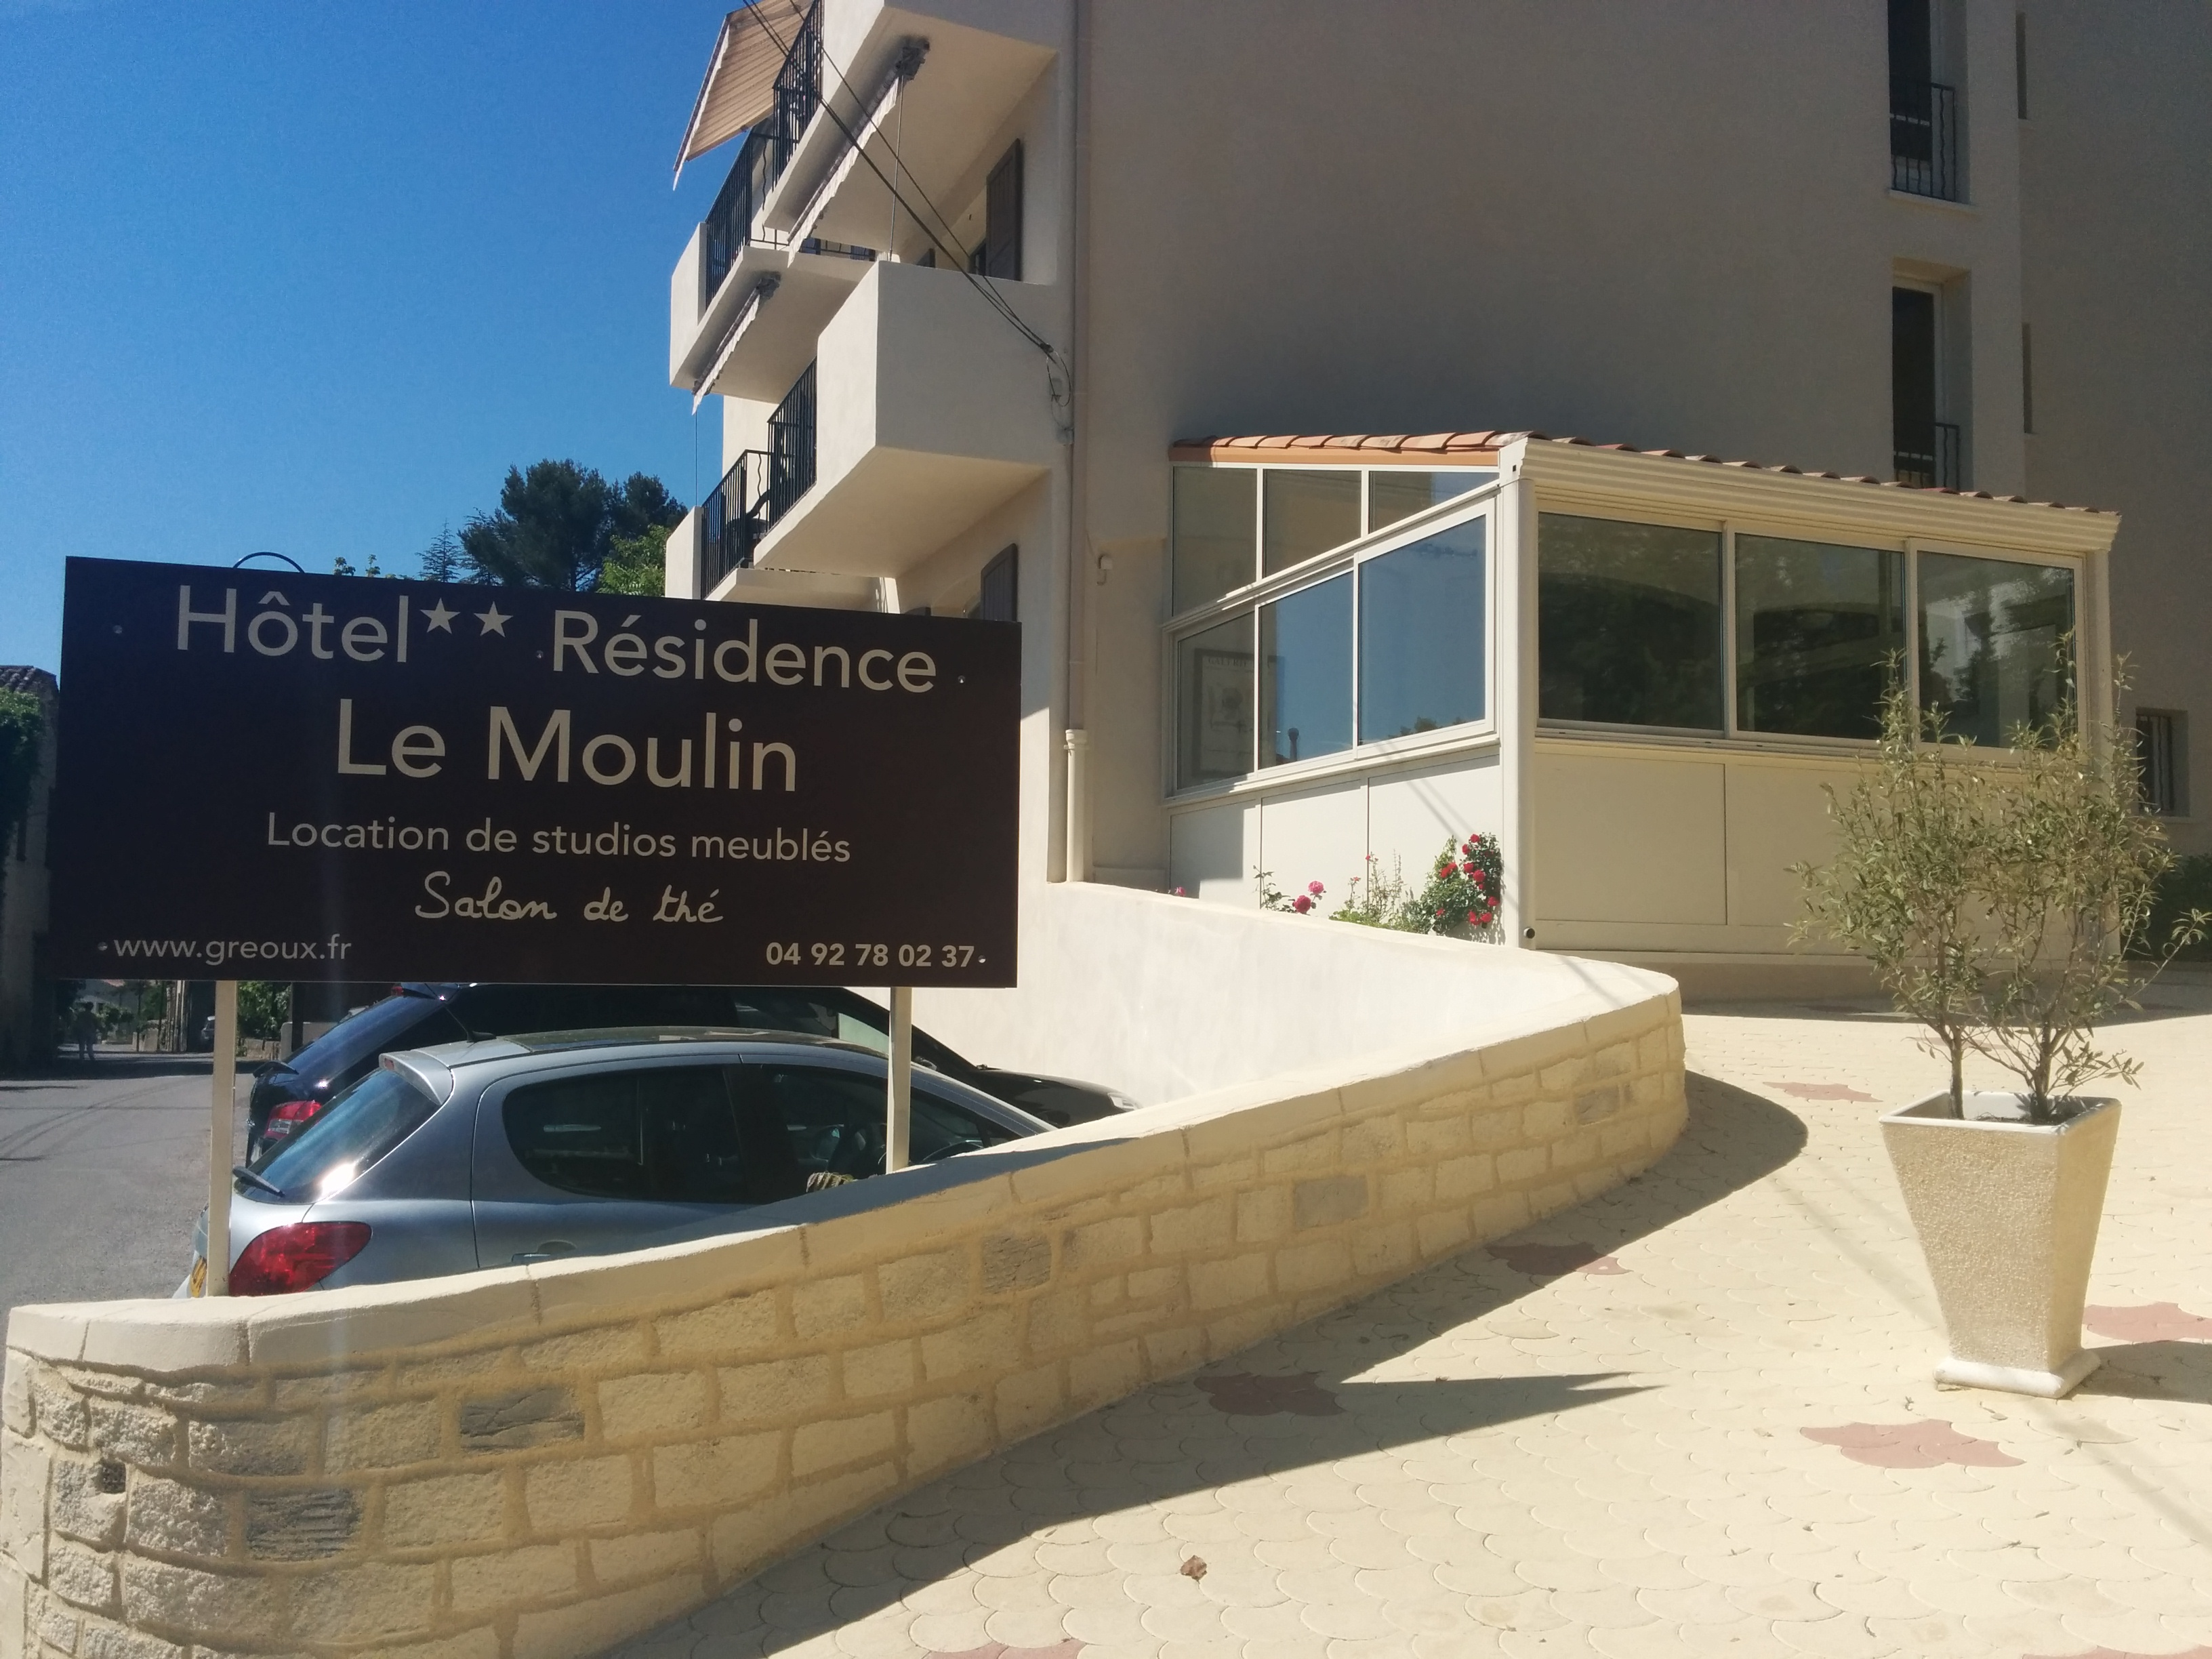 Hotel-le-moulin-greoux